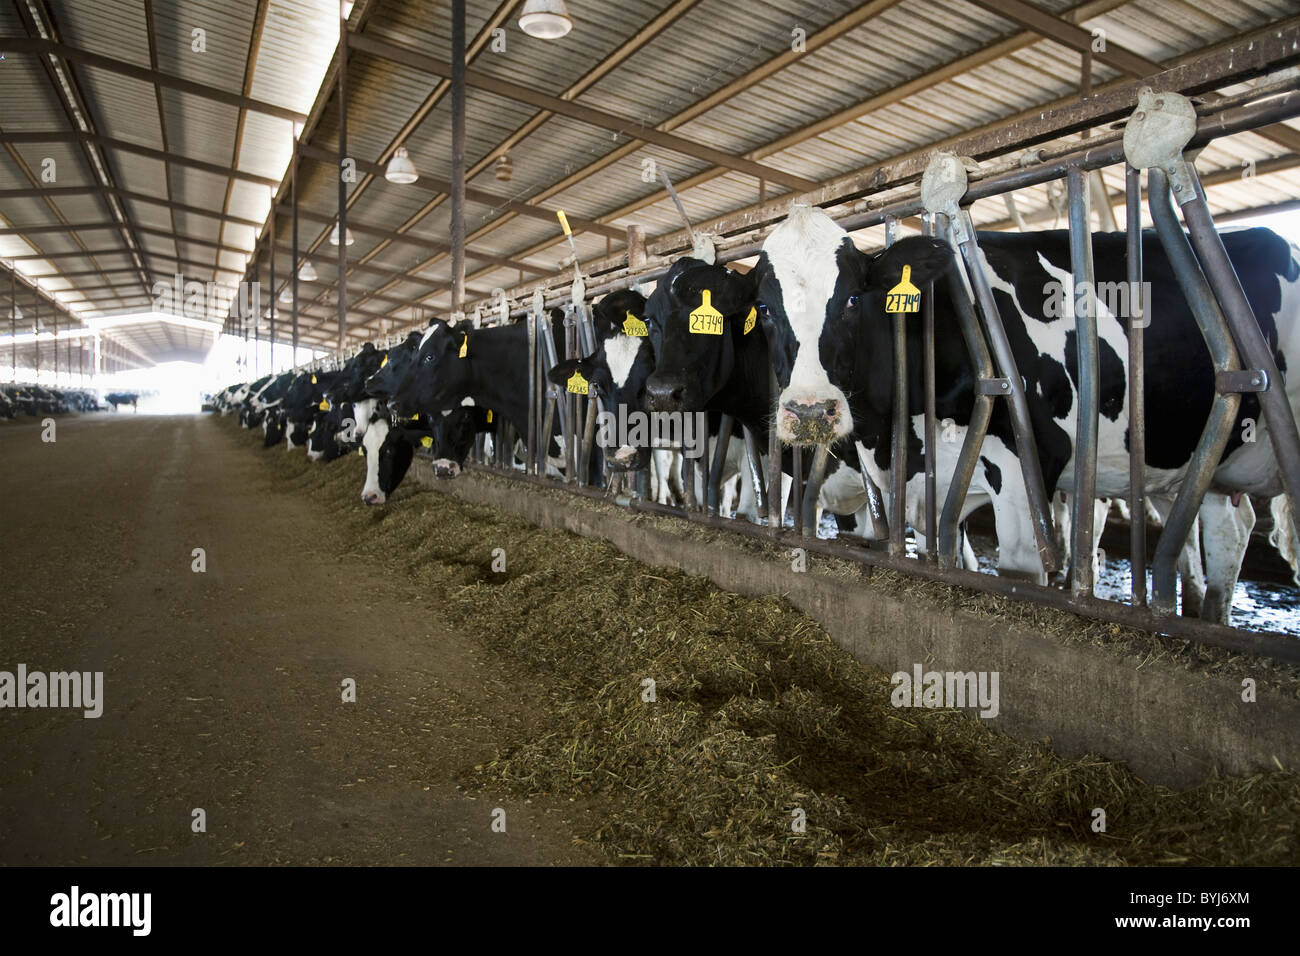 Curious Holstein Dairy Cows Feed On Silage In A Freestall Barn At Large California San Joaquin Valley USA